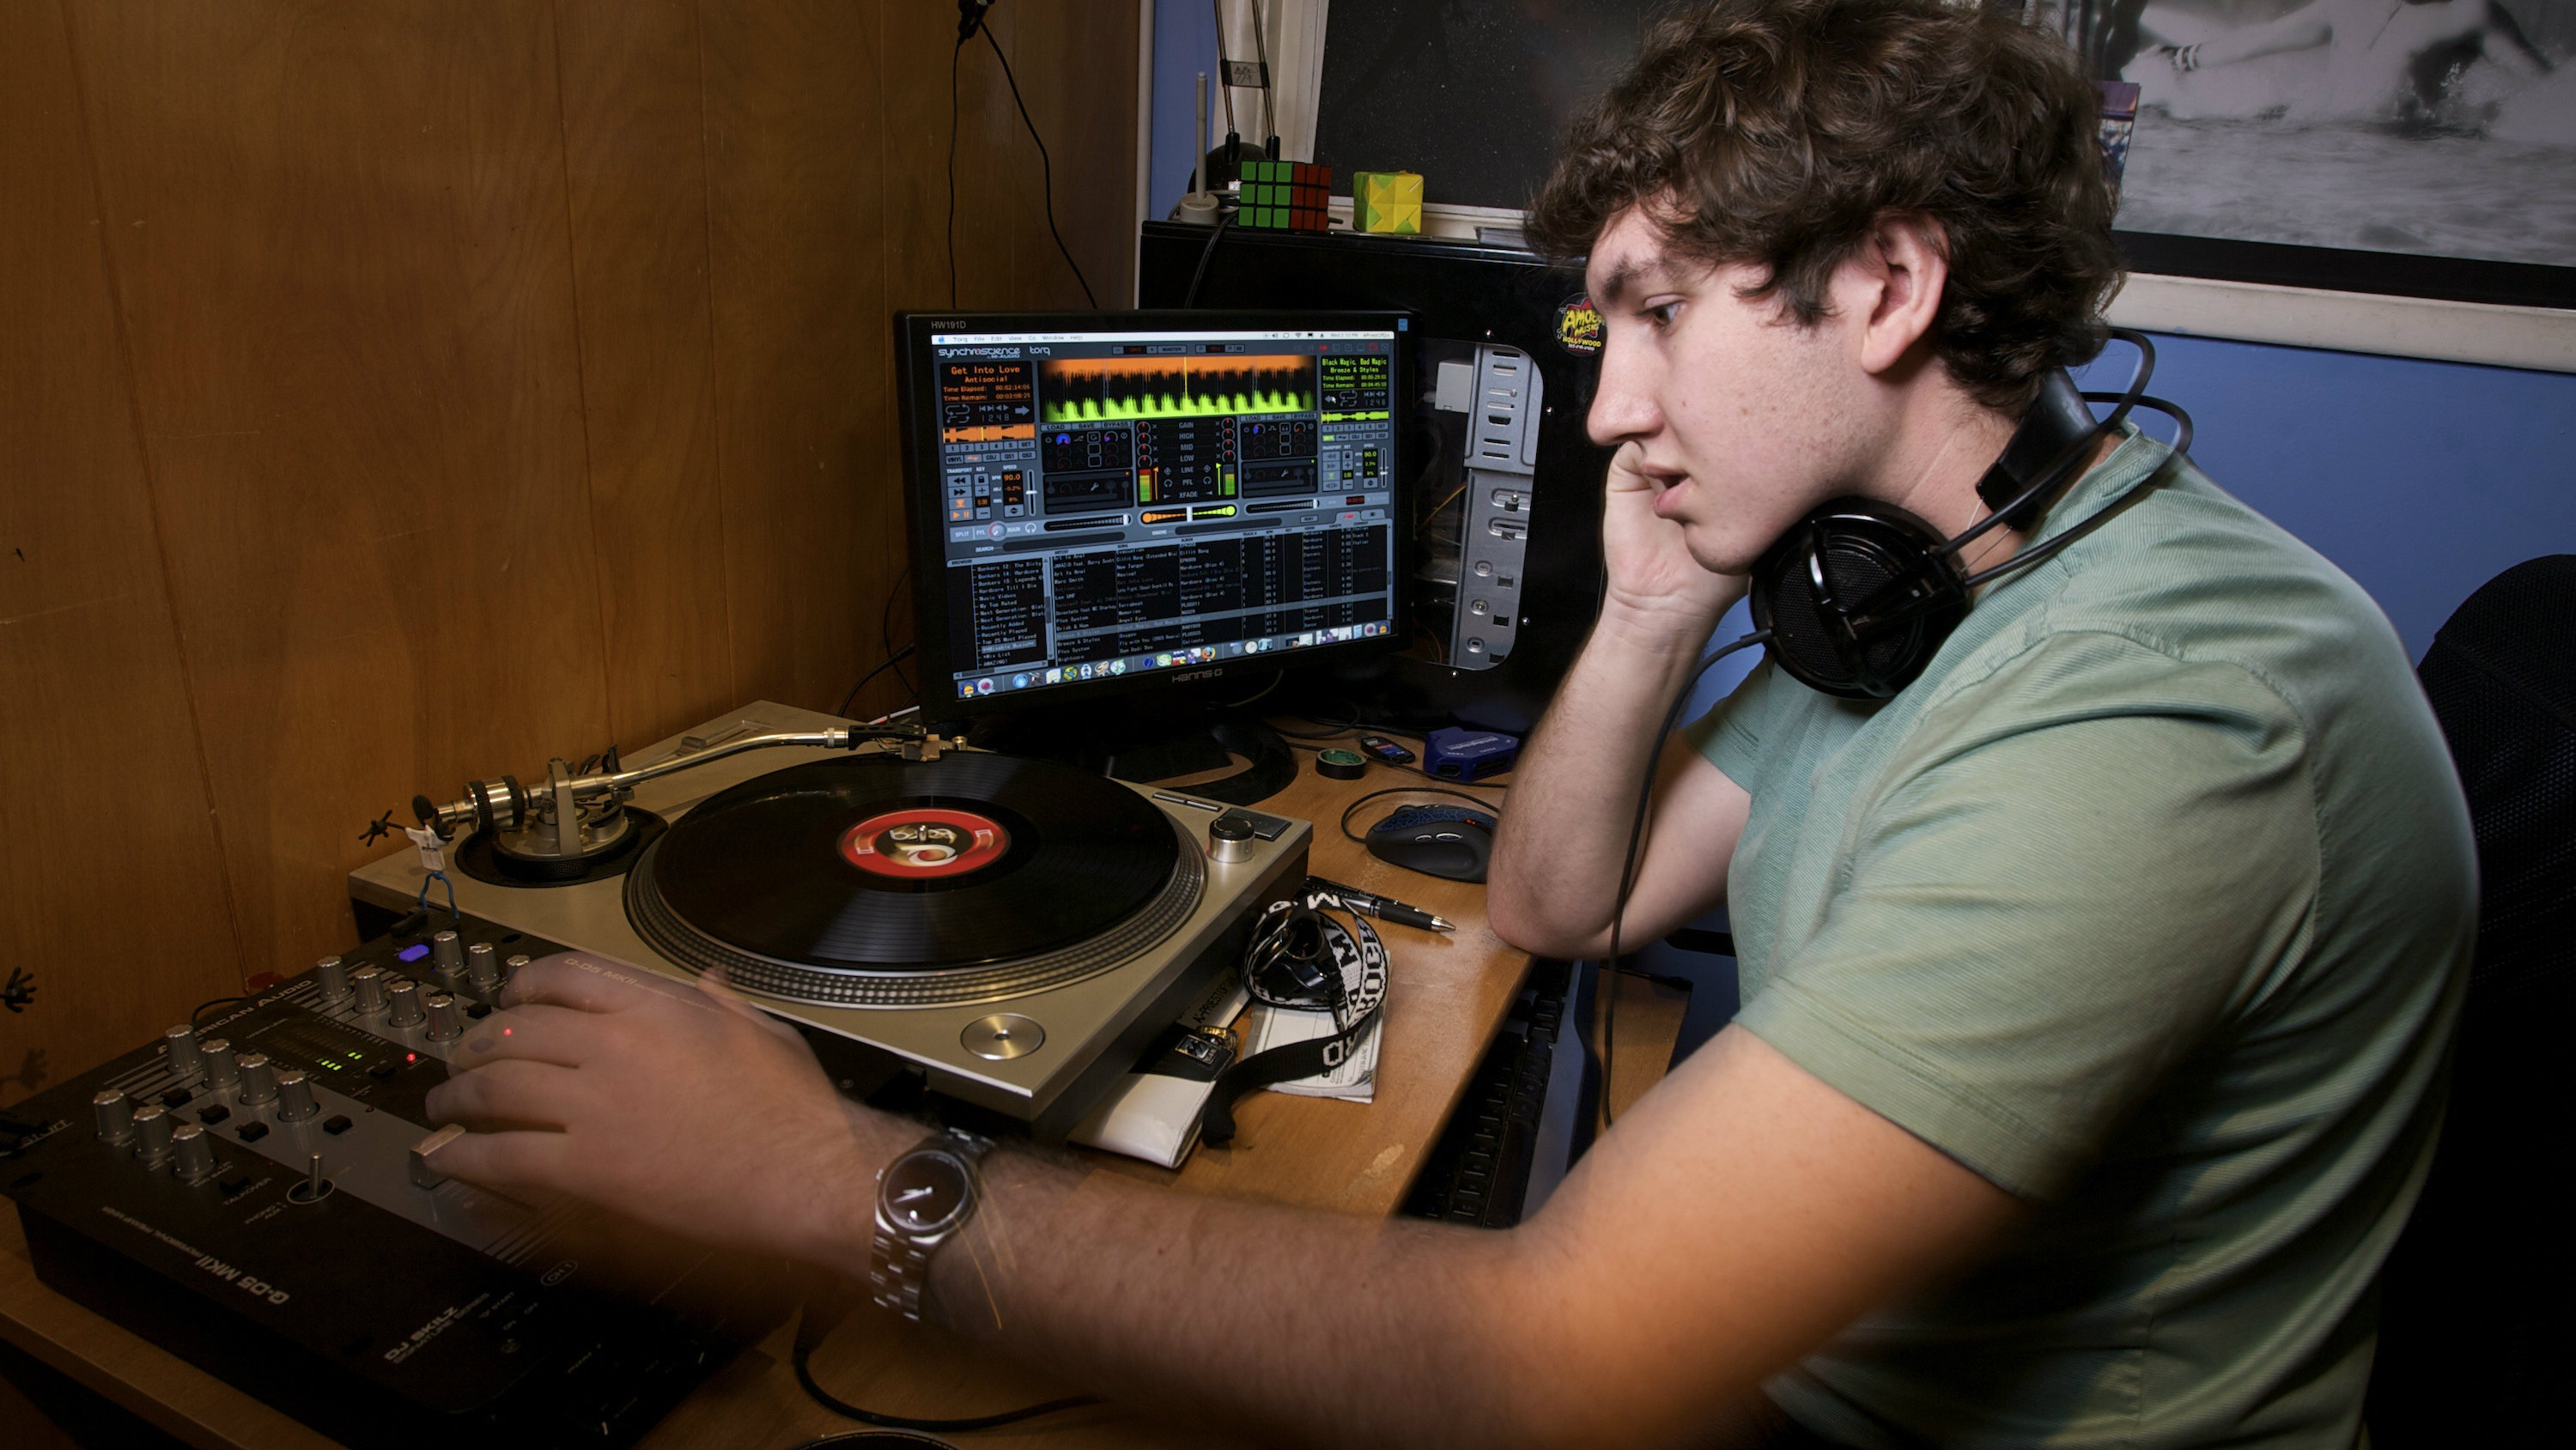 A DJ practices his electronic music DJ skills, as he spends hours in his room broadcasting music online for his friends,